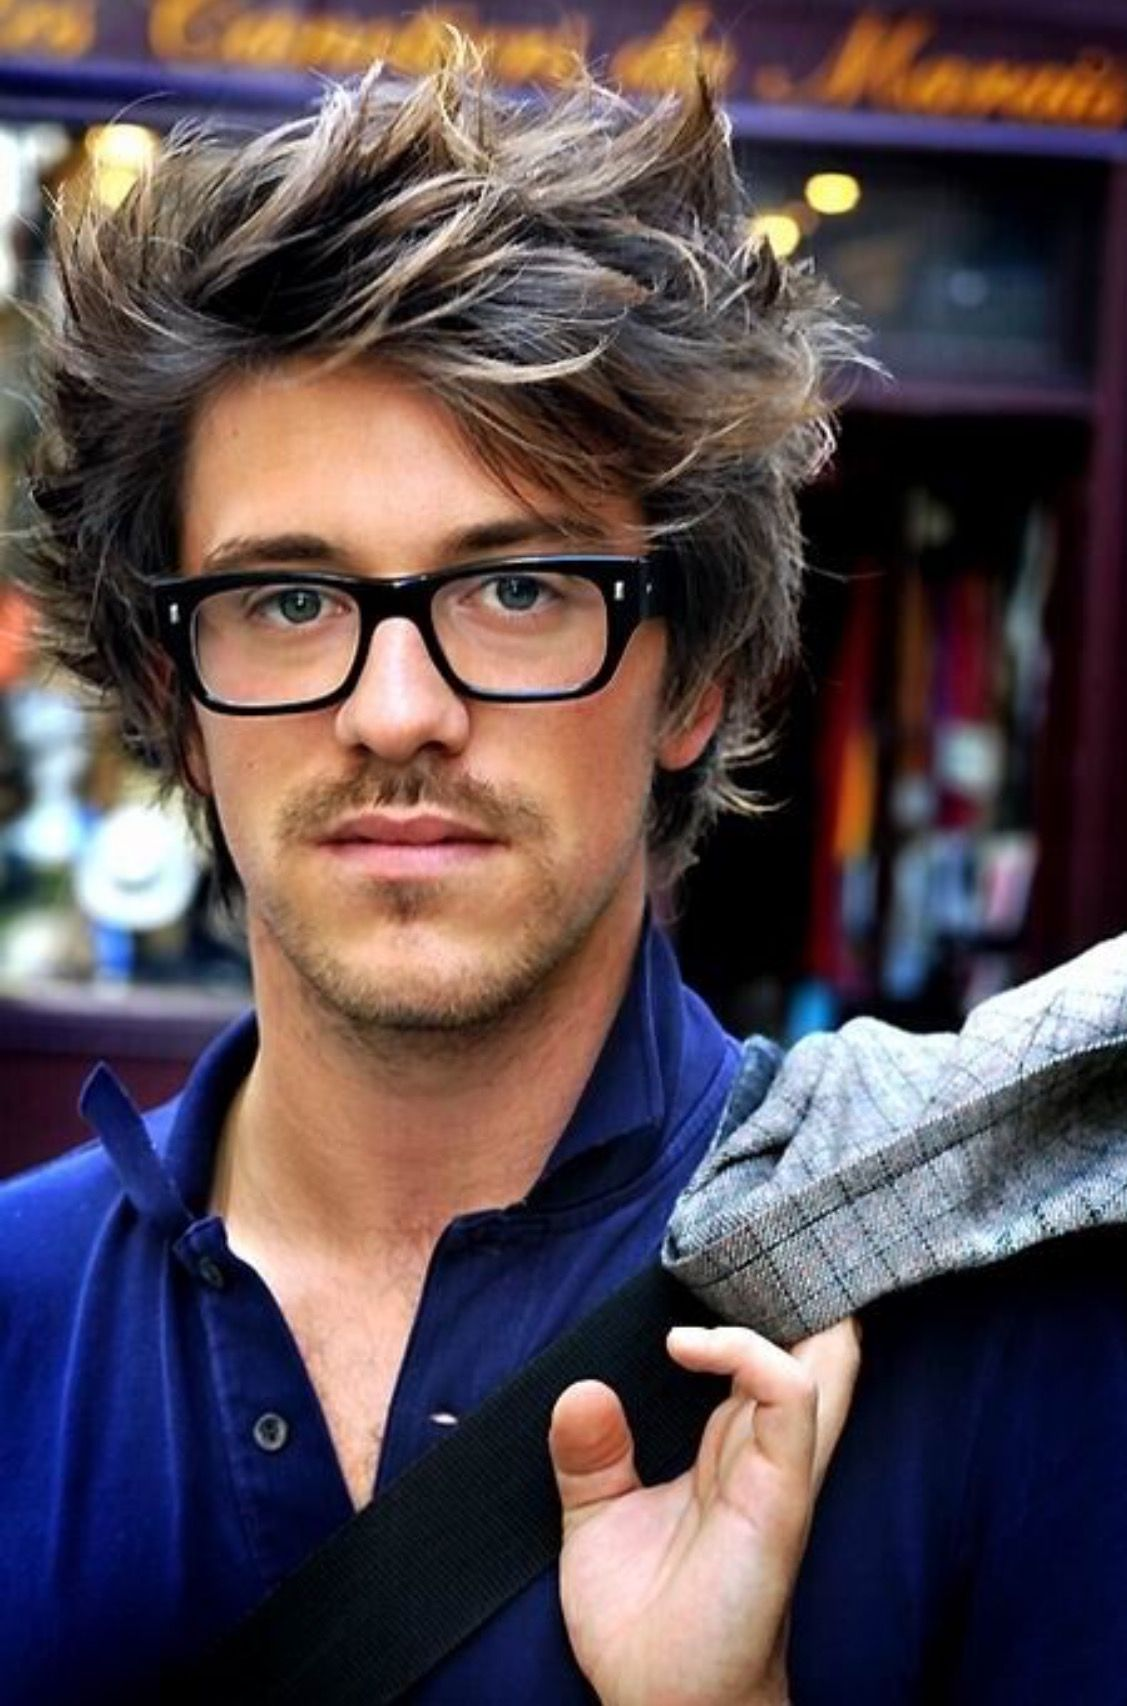 Mens Hairstyles With Glasses Messy Long Hairstyles Mens Hairstyles 2015 2016 Style